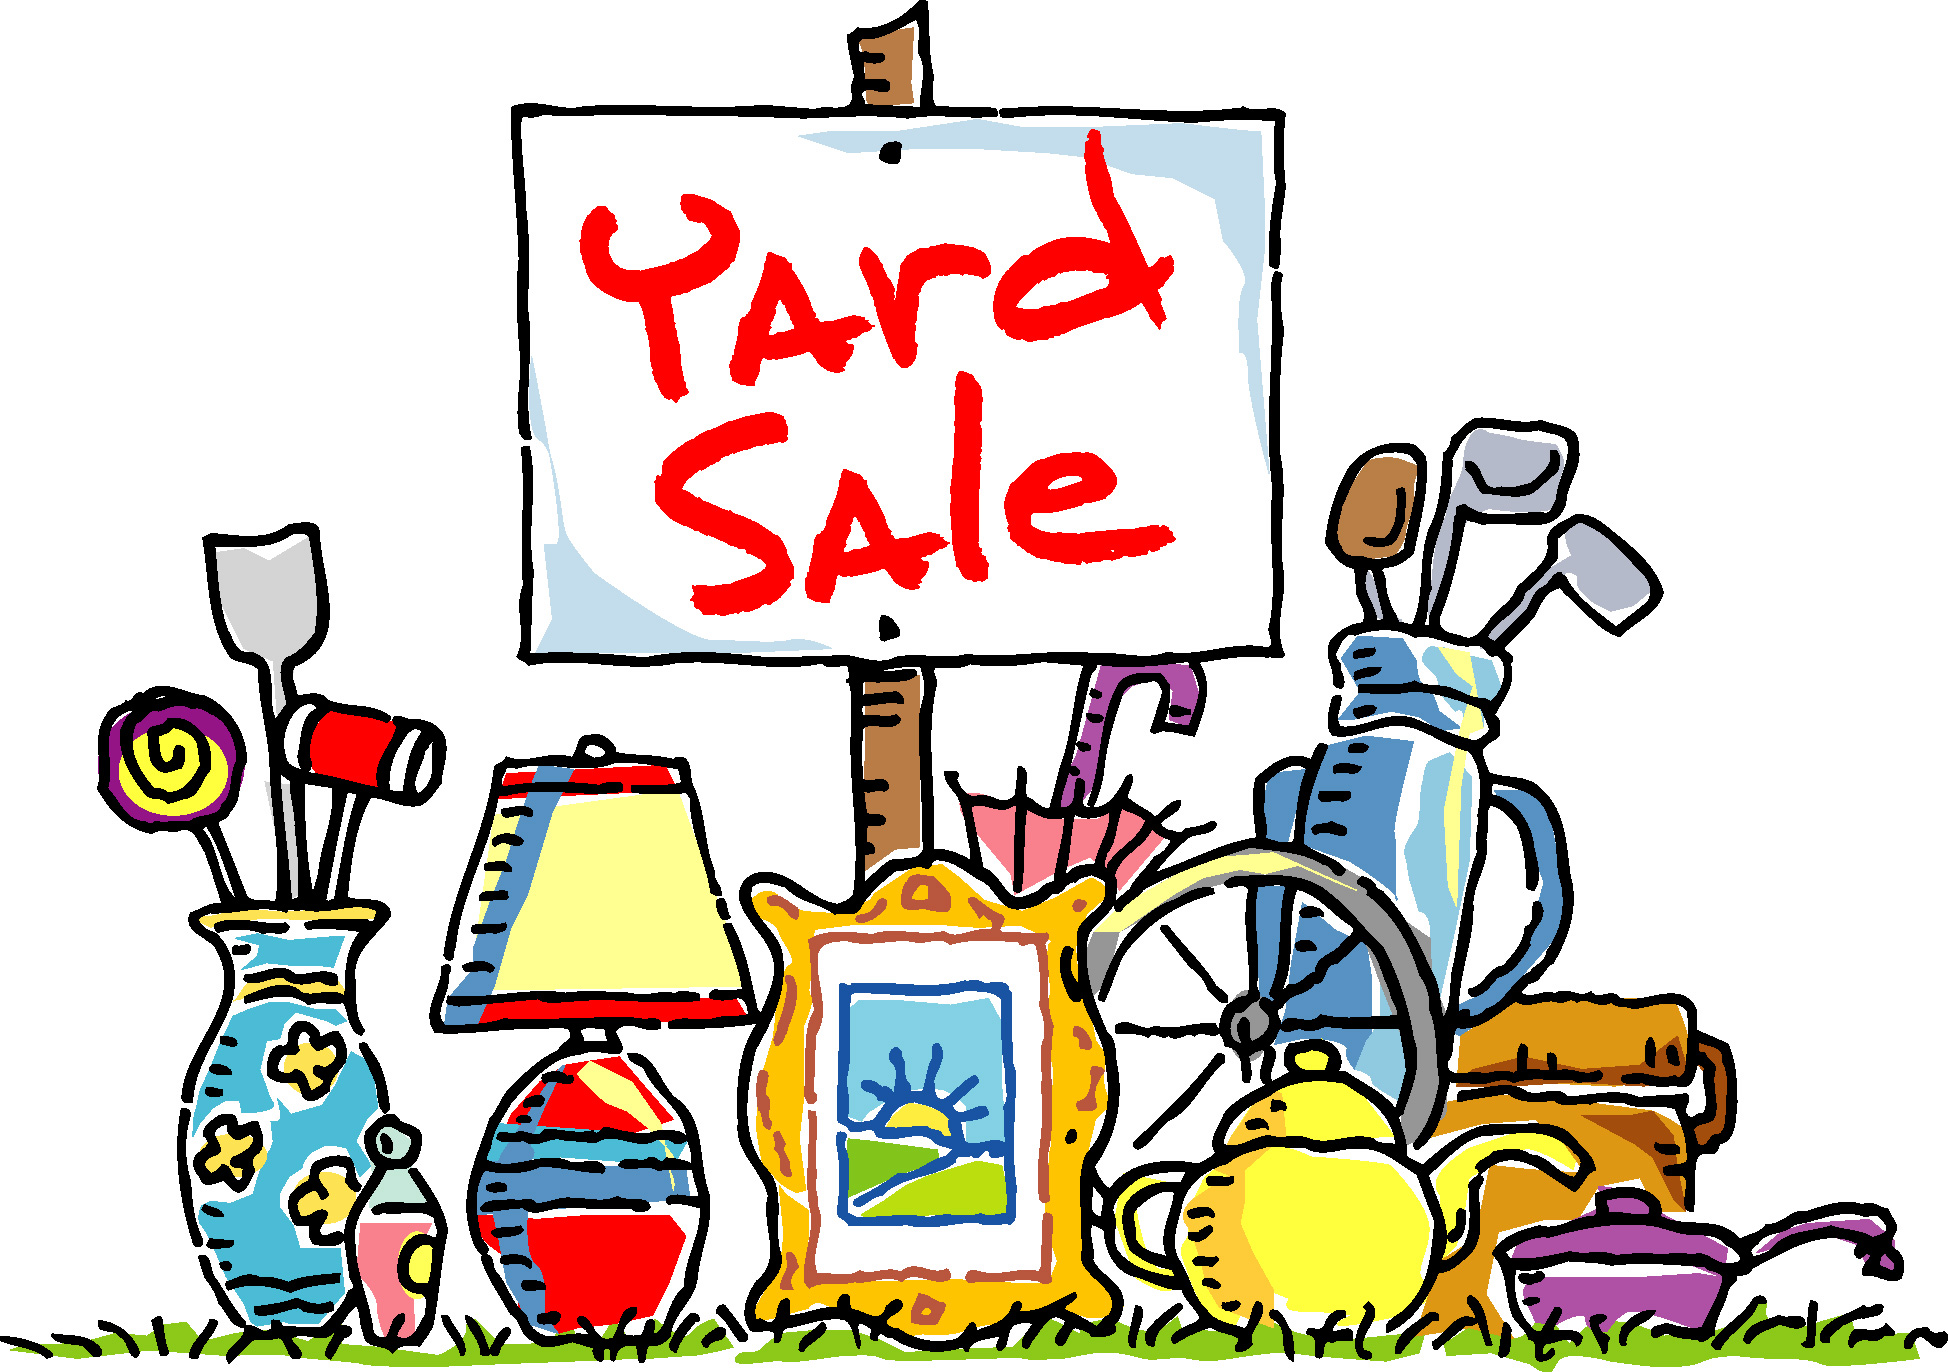 Garage Sale Images Free